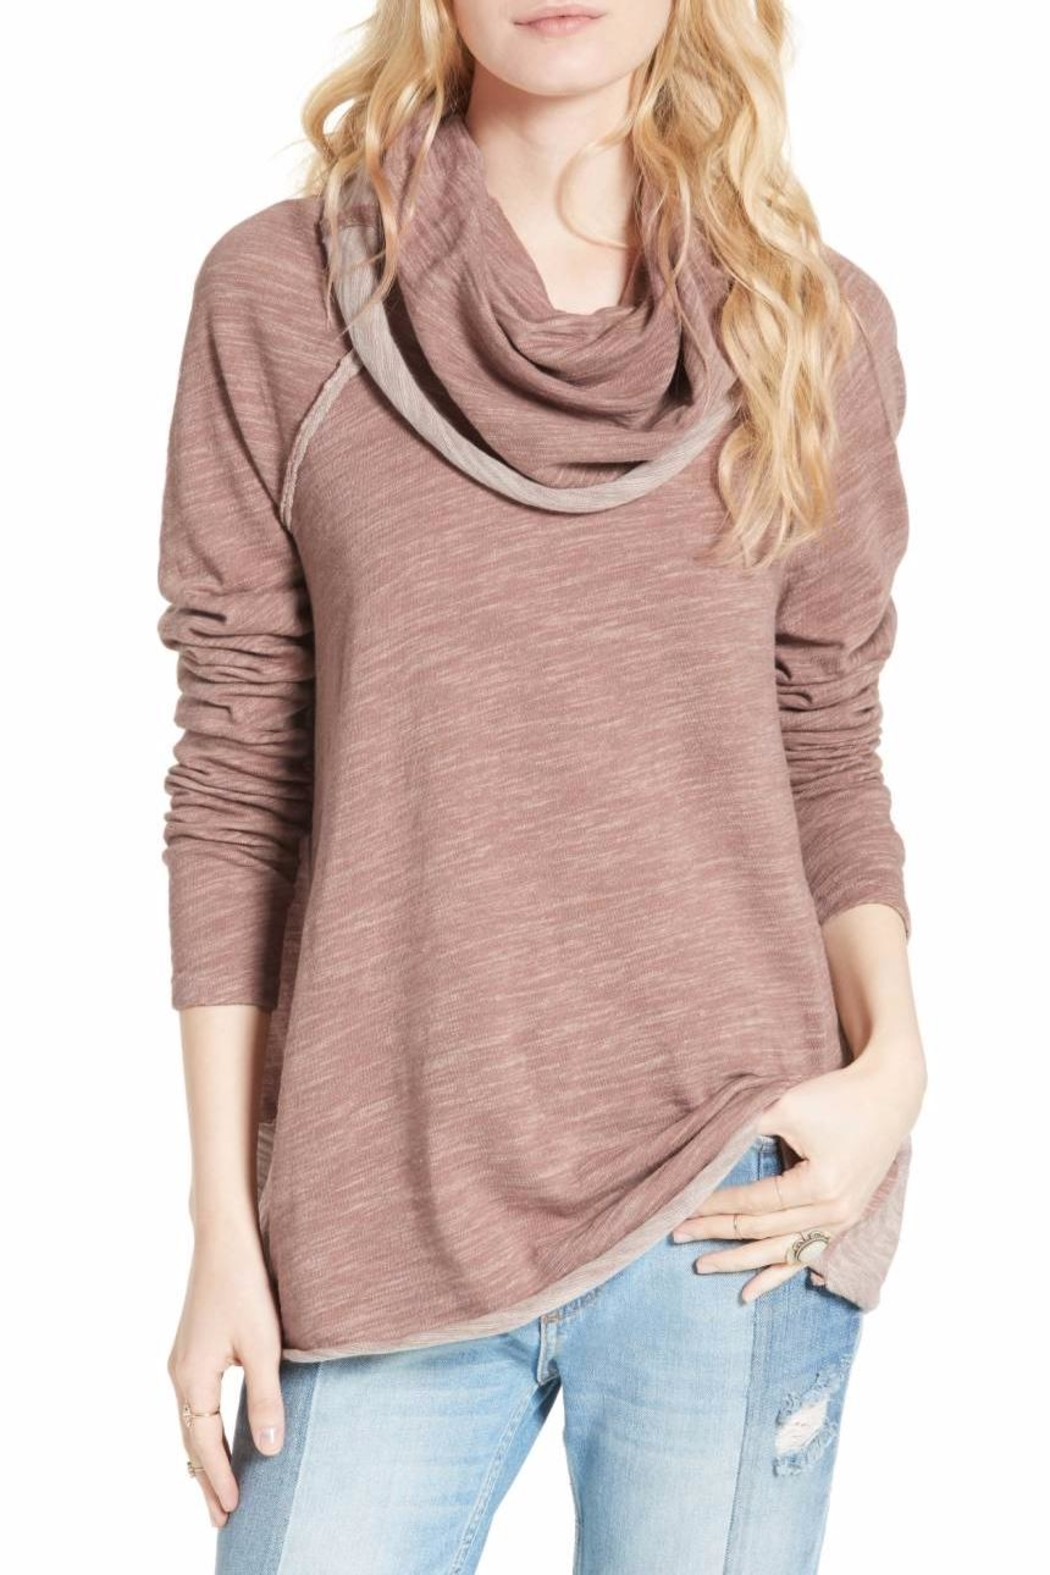 Free People Cocoon Cowl Pullover - Main Image